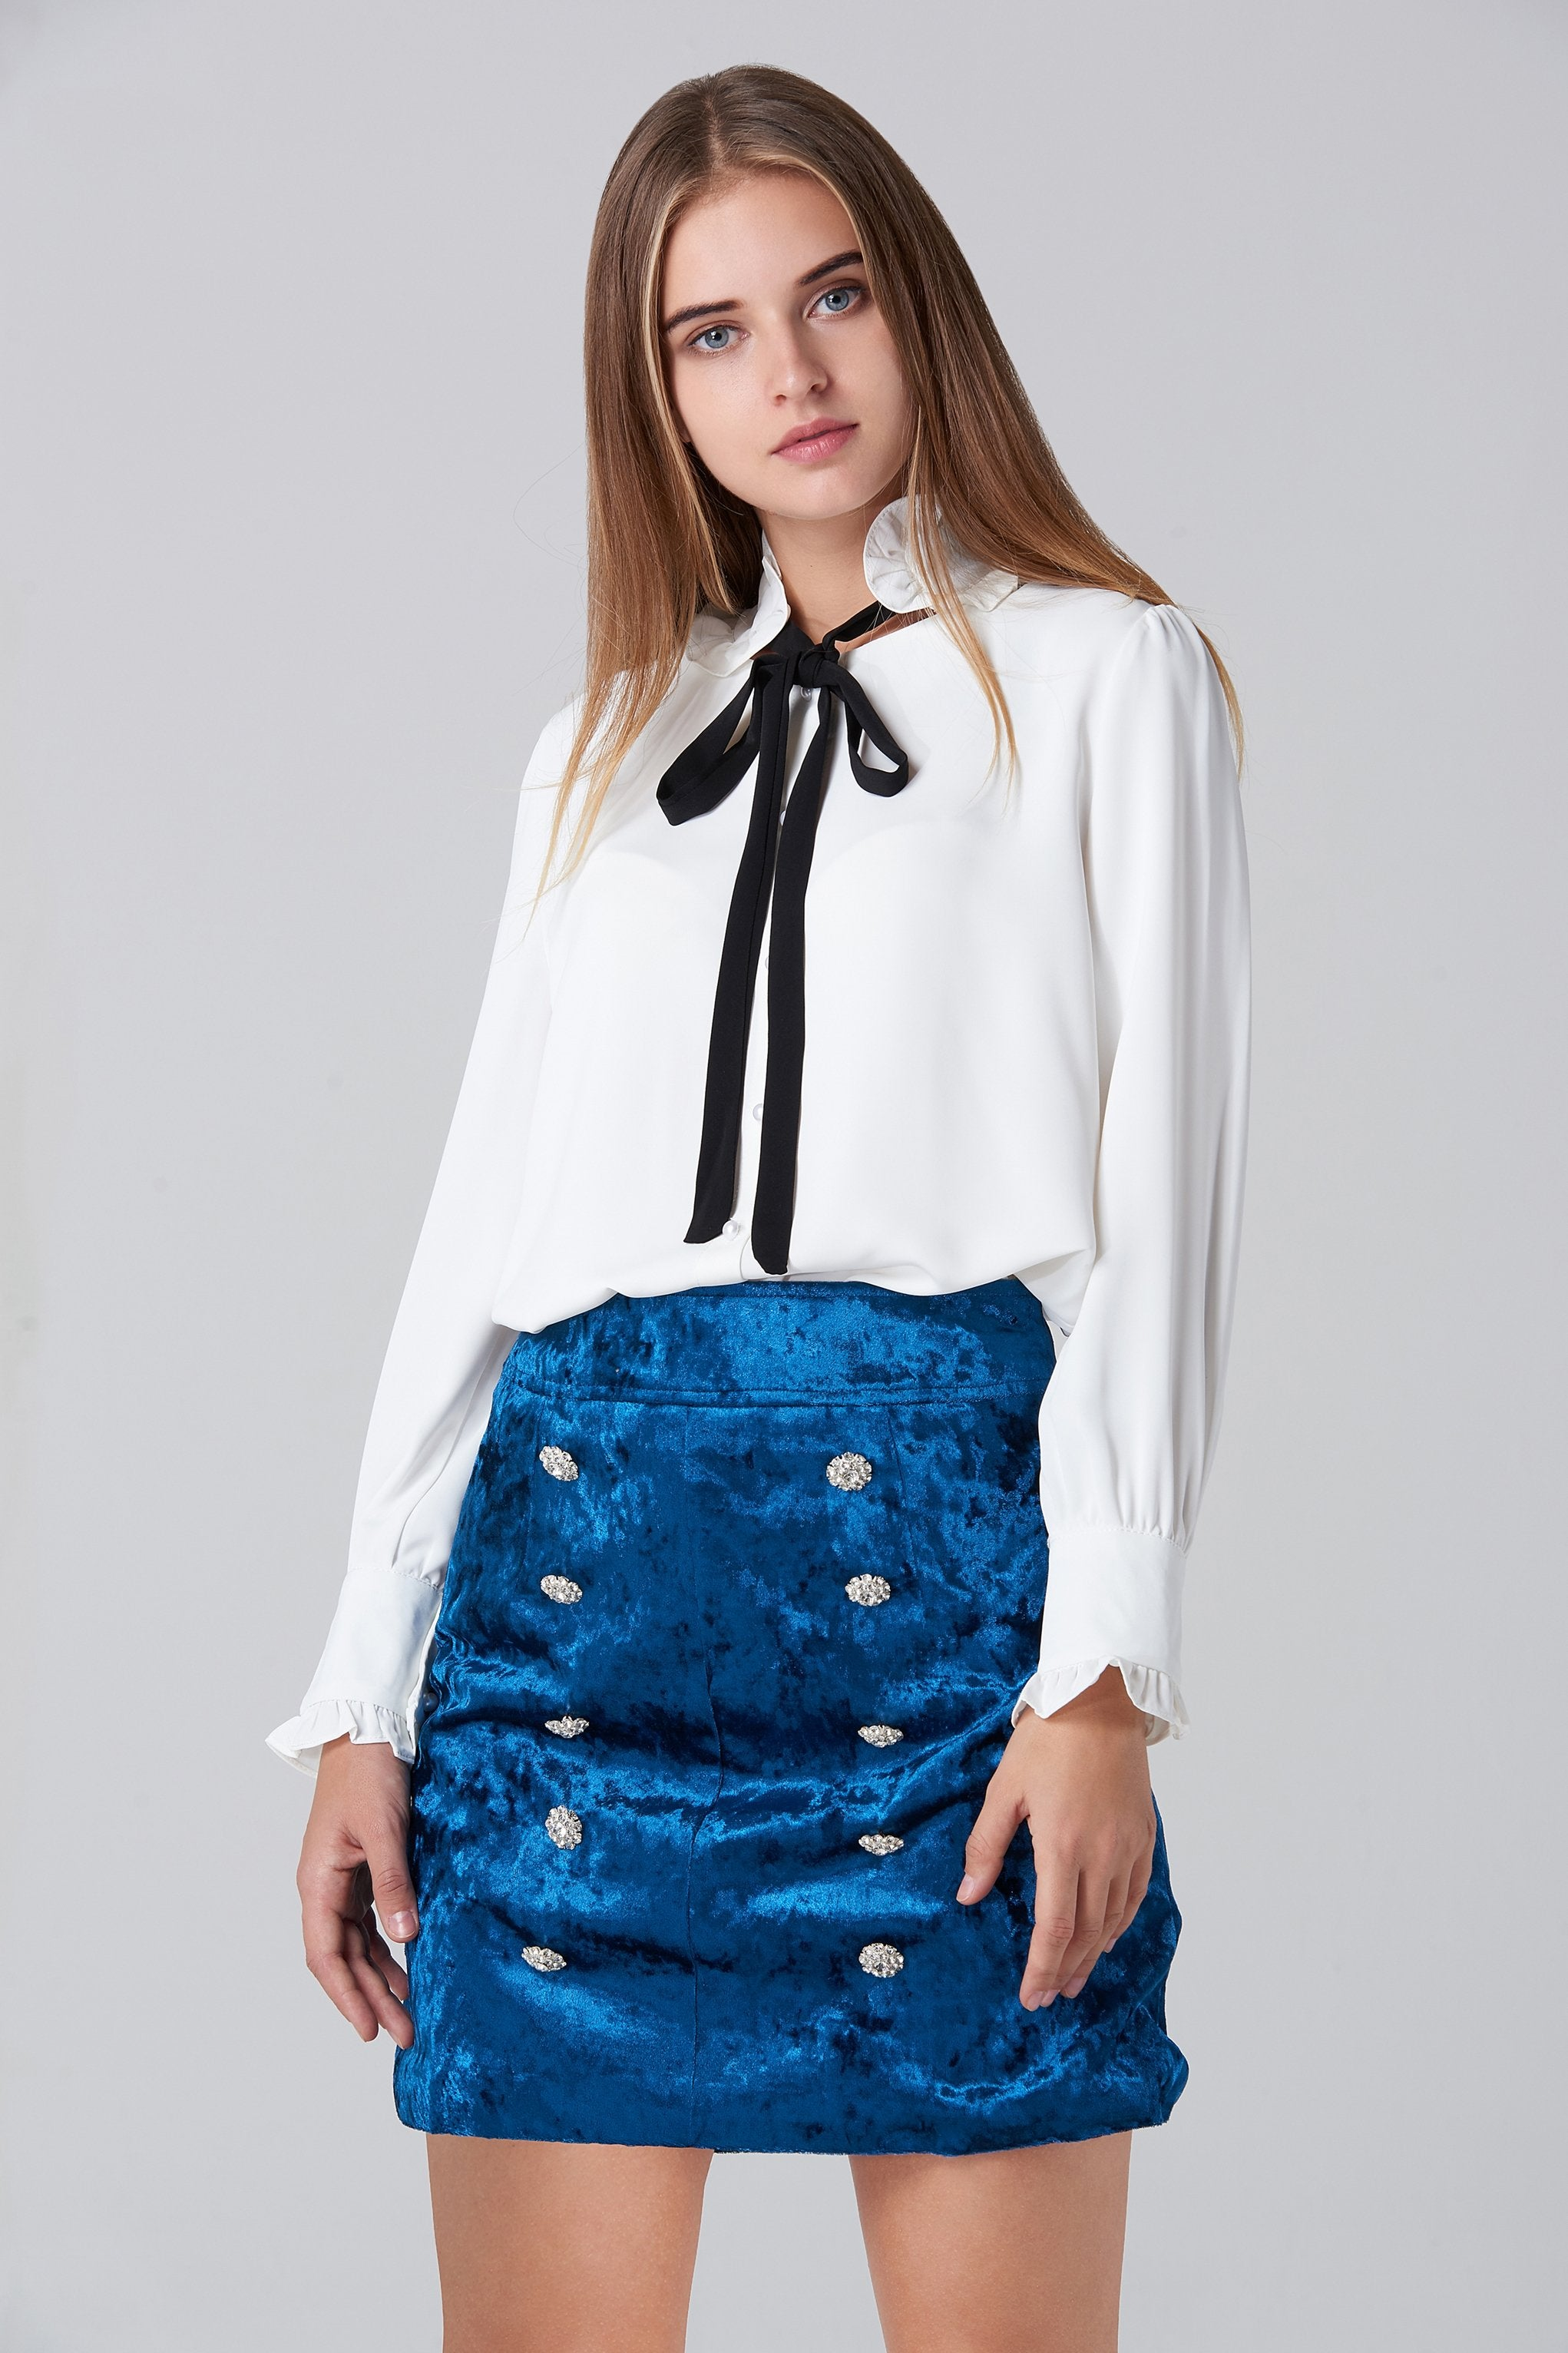 Blue Velvet Double Jewel Button Skirt - ownthelooks